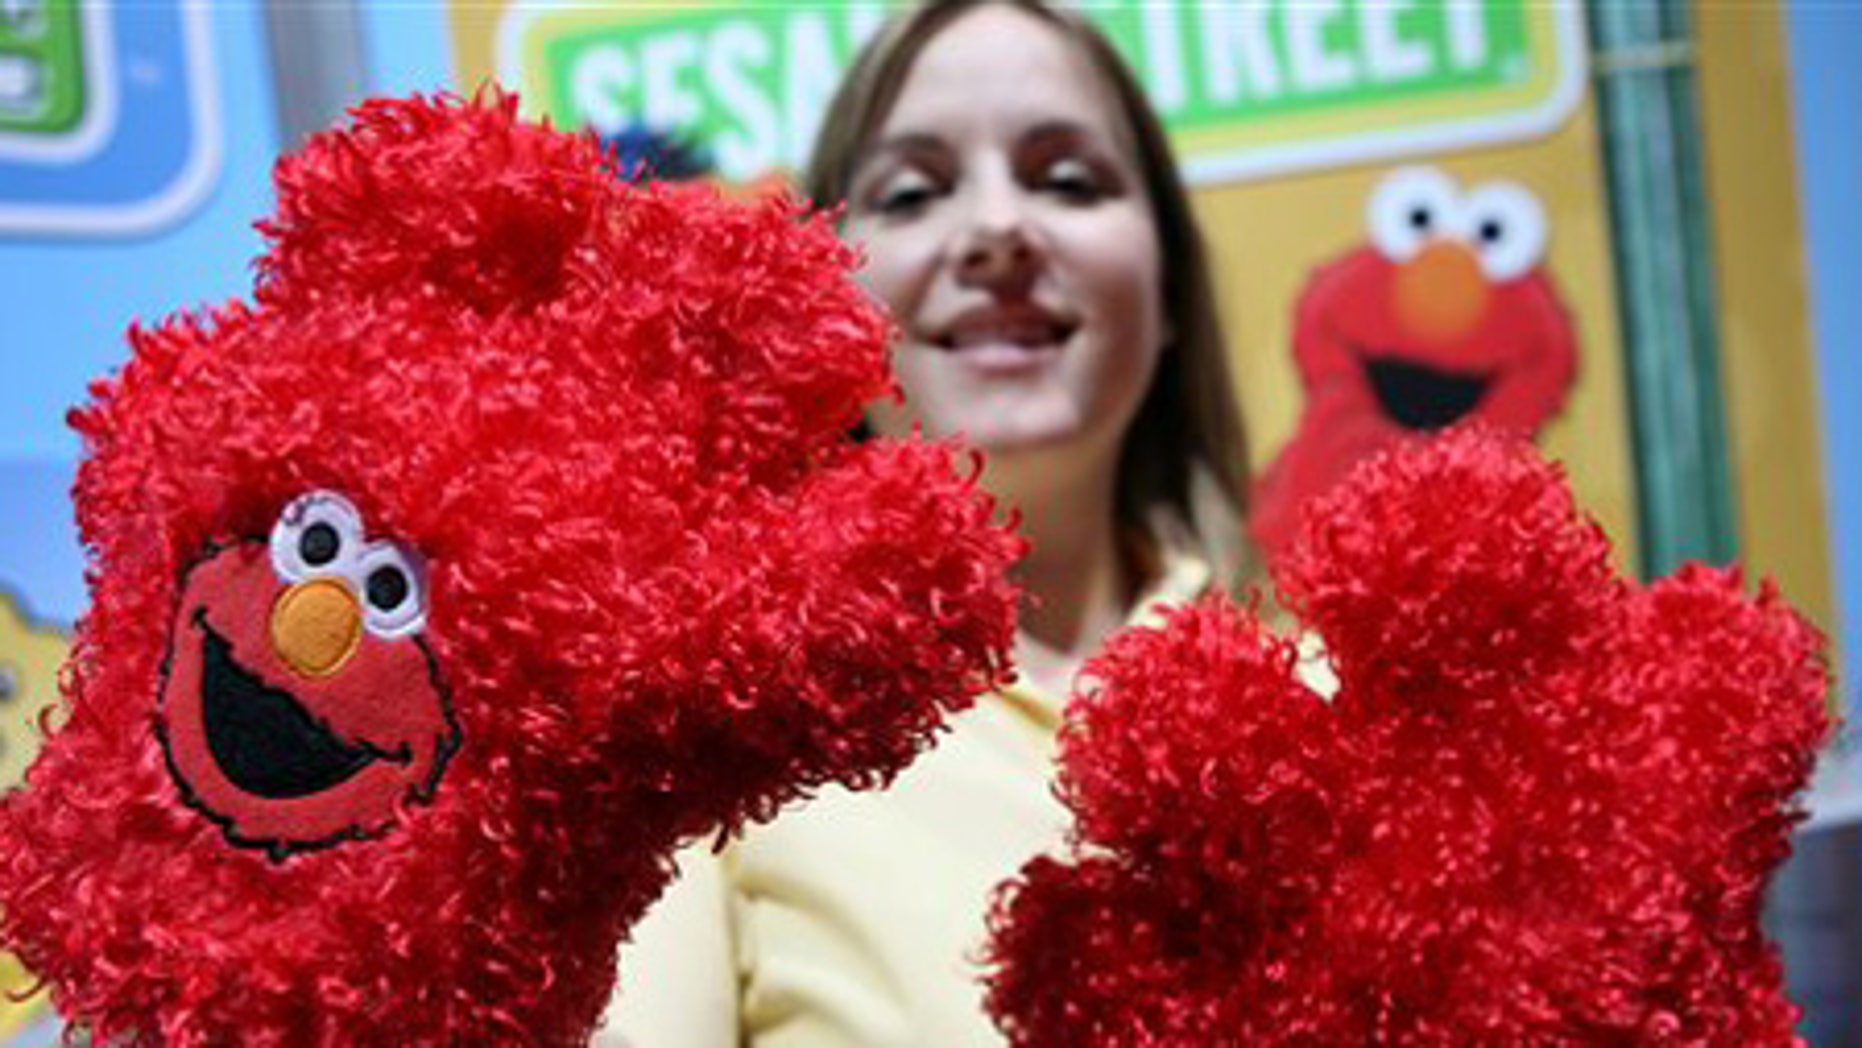 Feb. 18: Taryn Pry with Fisher Price shows off Elmo Tickle Hands, a touch activated toy featuring Sesame Street's Elmo.